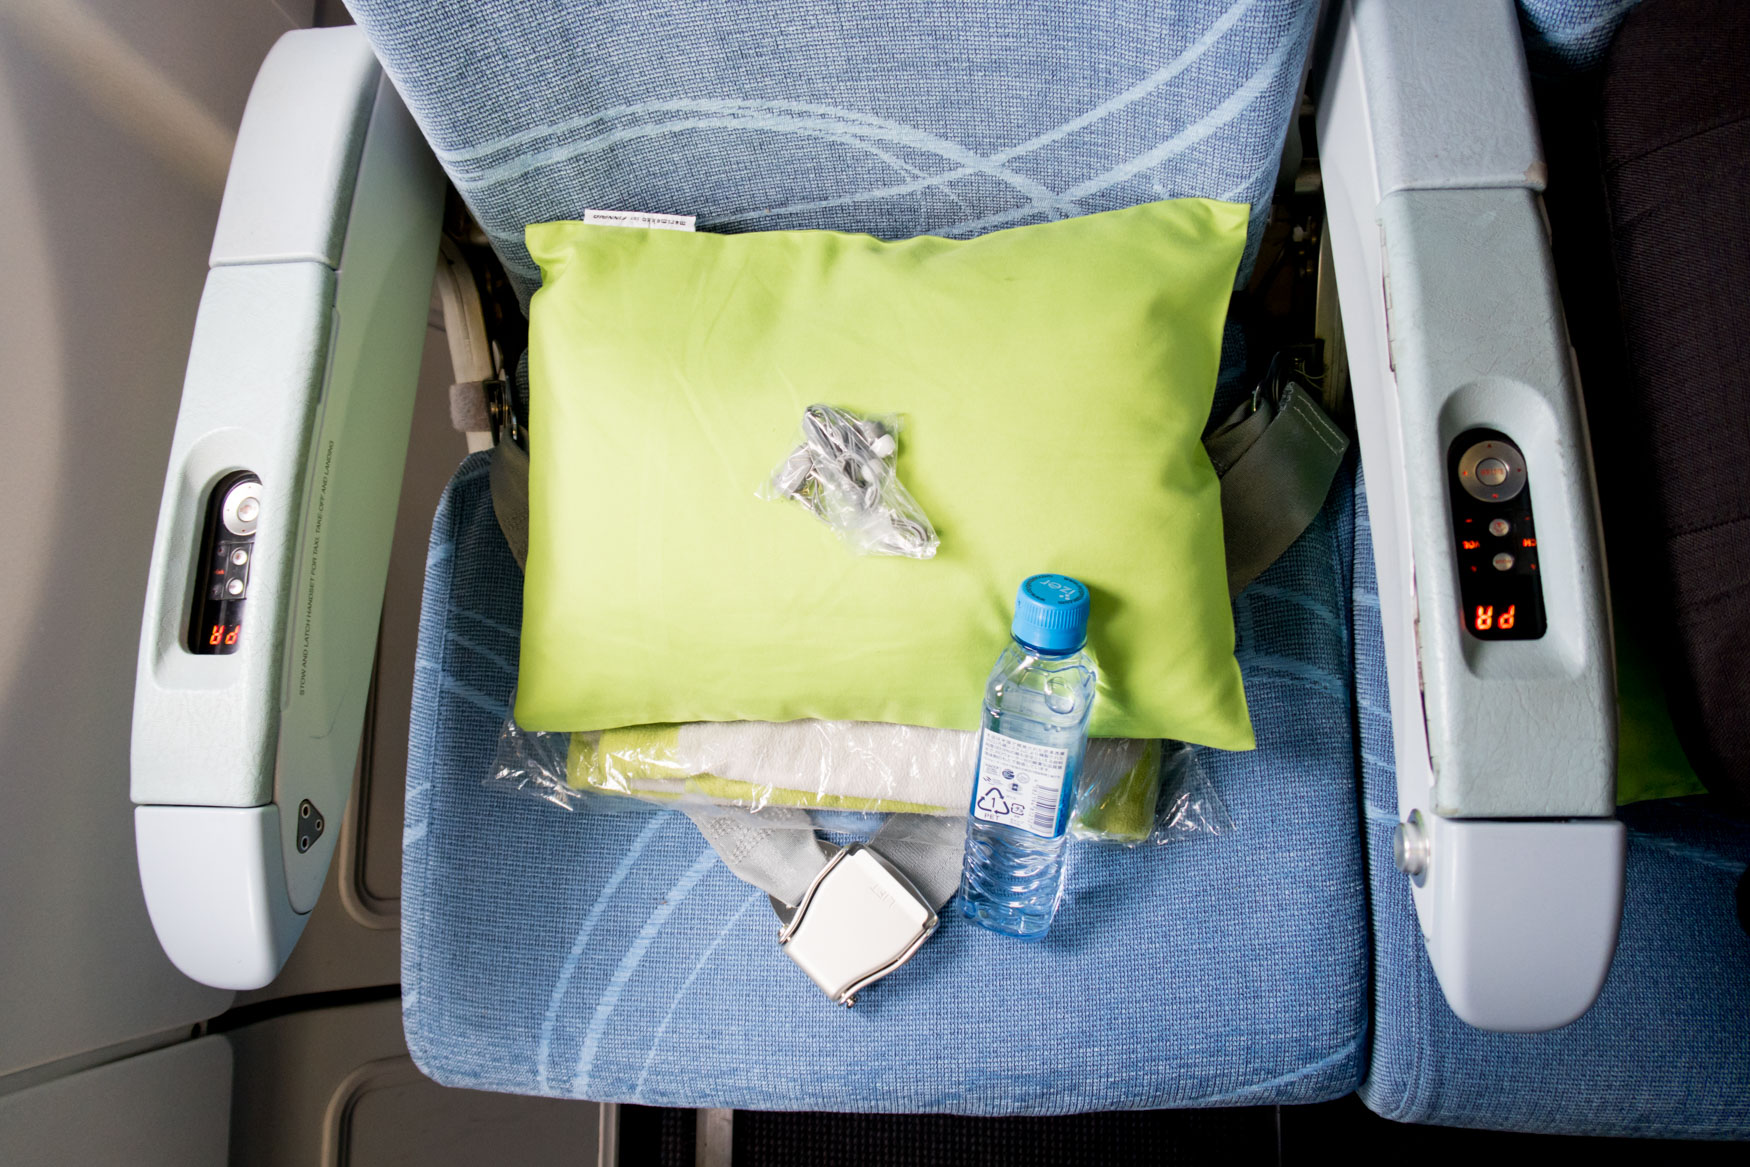 Finnair A330 Economy Class Amenities